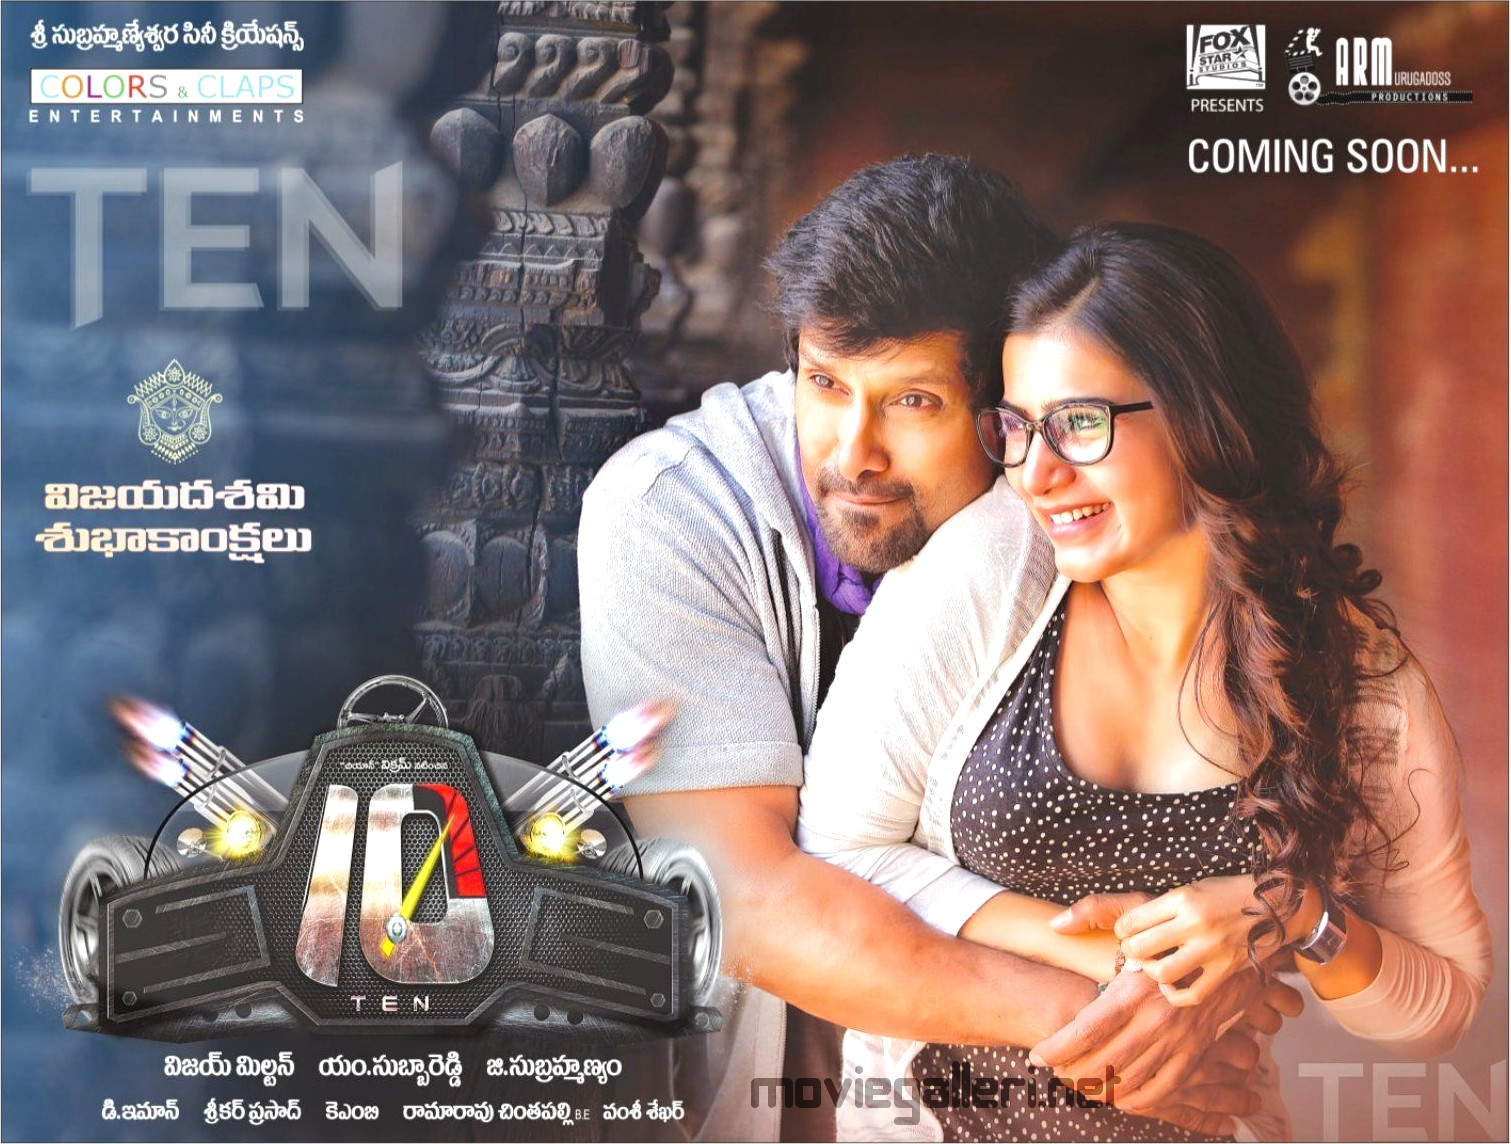 Vikram Samantha 10 TEN Movie Vijayadashami Wishes Wallpapers